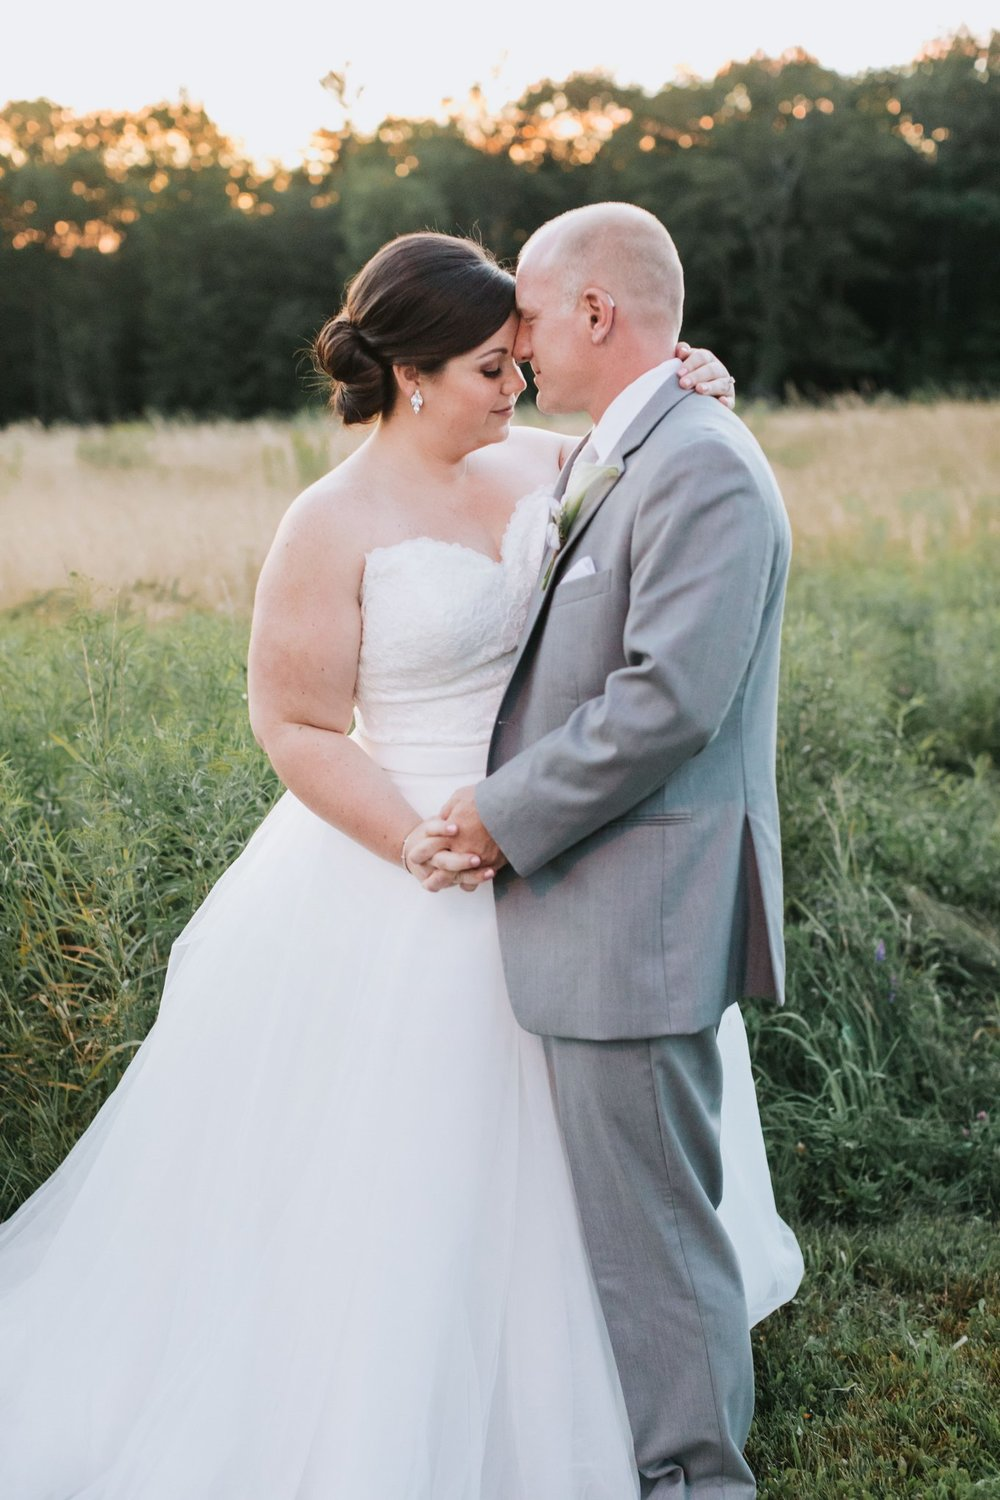 Harrington_Farm_Wedding_Photographer-51.jpg